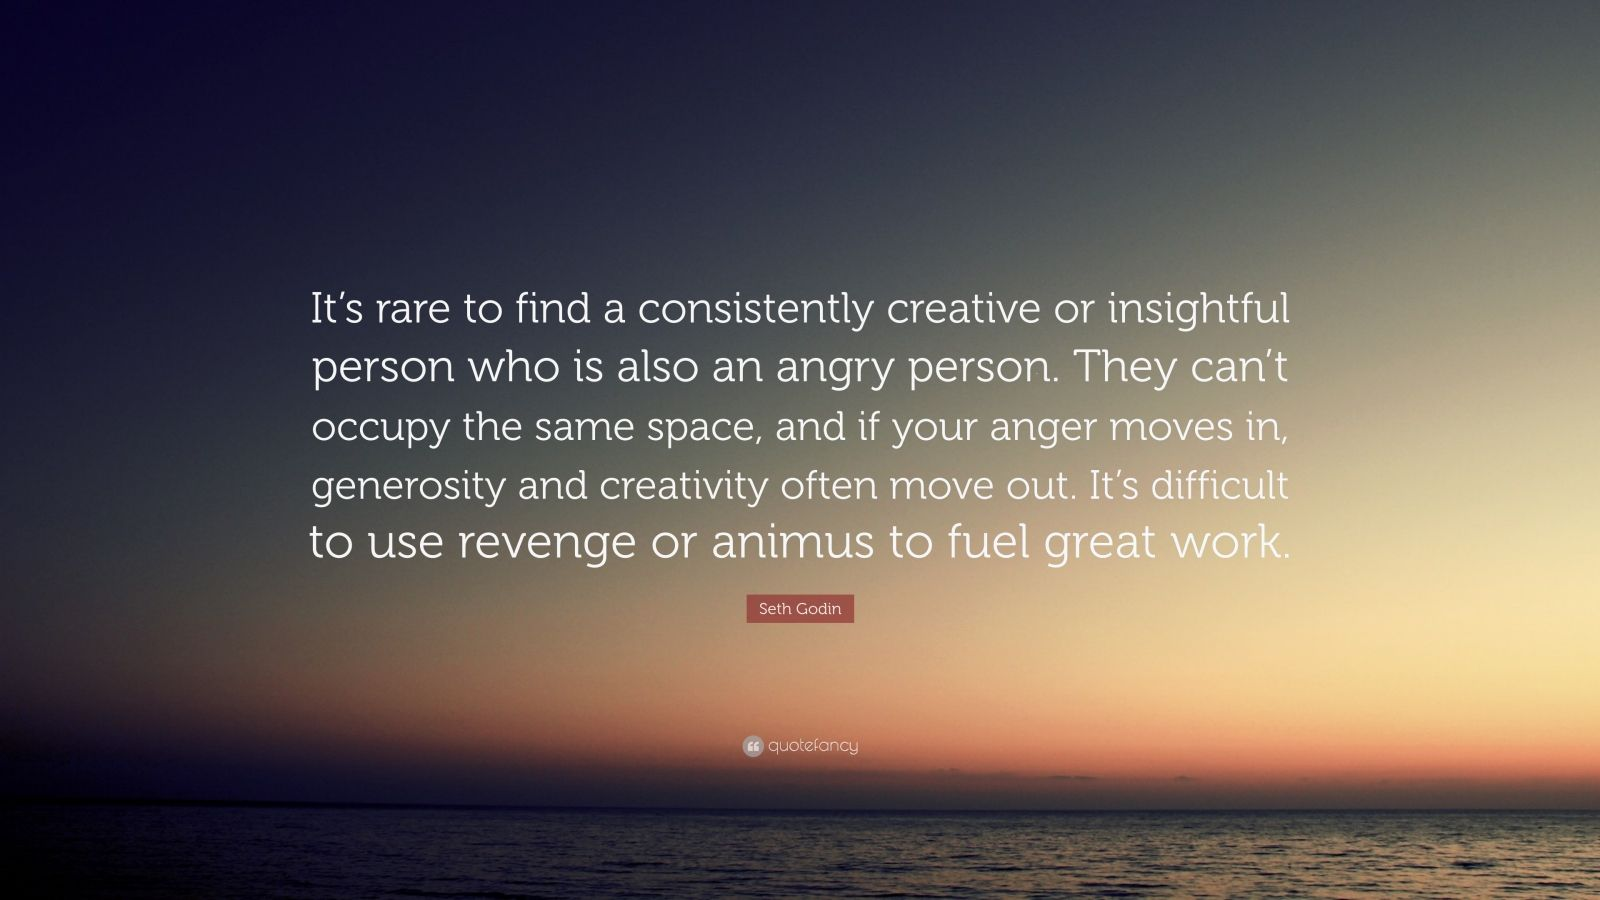 "Seth Godin Quote: ""It's rare to find a consistently creative or insightful person who is also an angry person. They can't occupy the same space, and if your anger moves in, generosity and creativity often move out. It's difficult to use revenge or animus to fuel great work."""